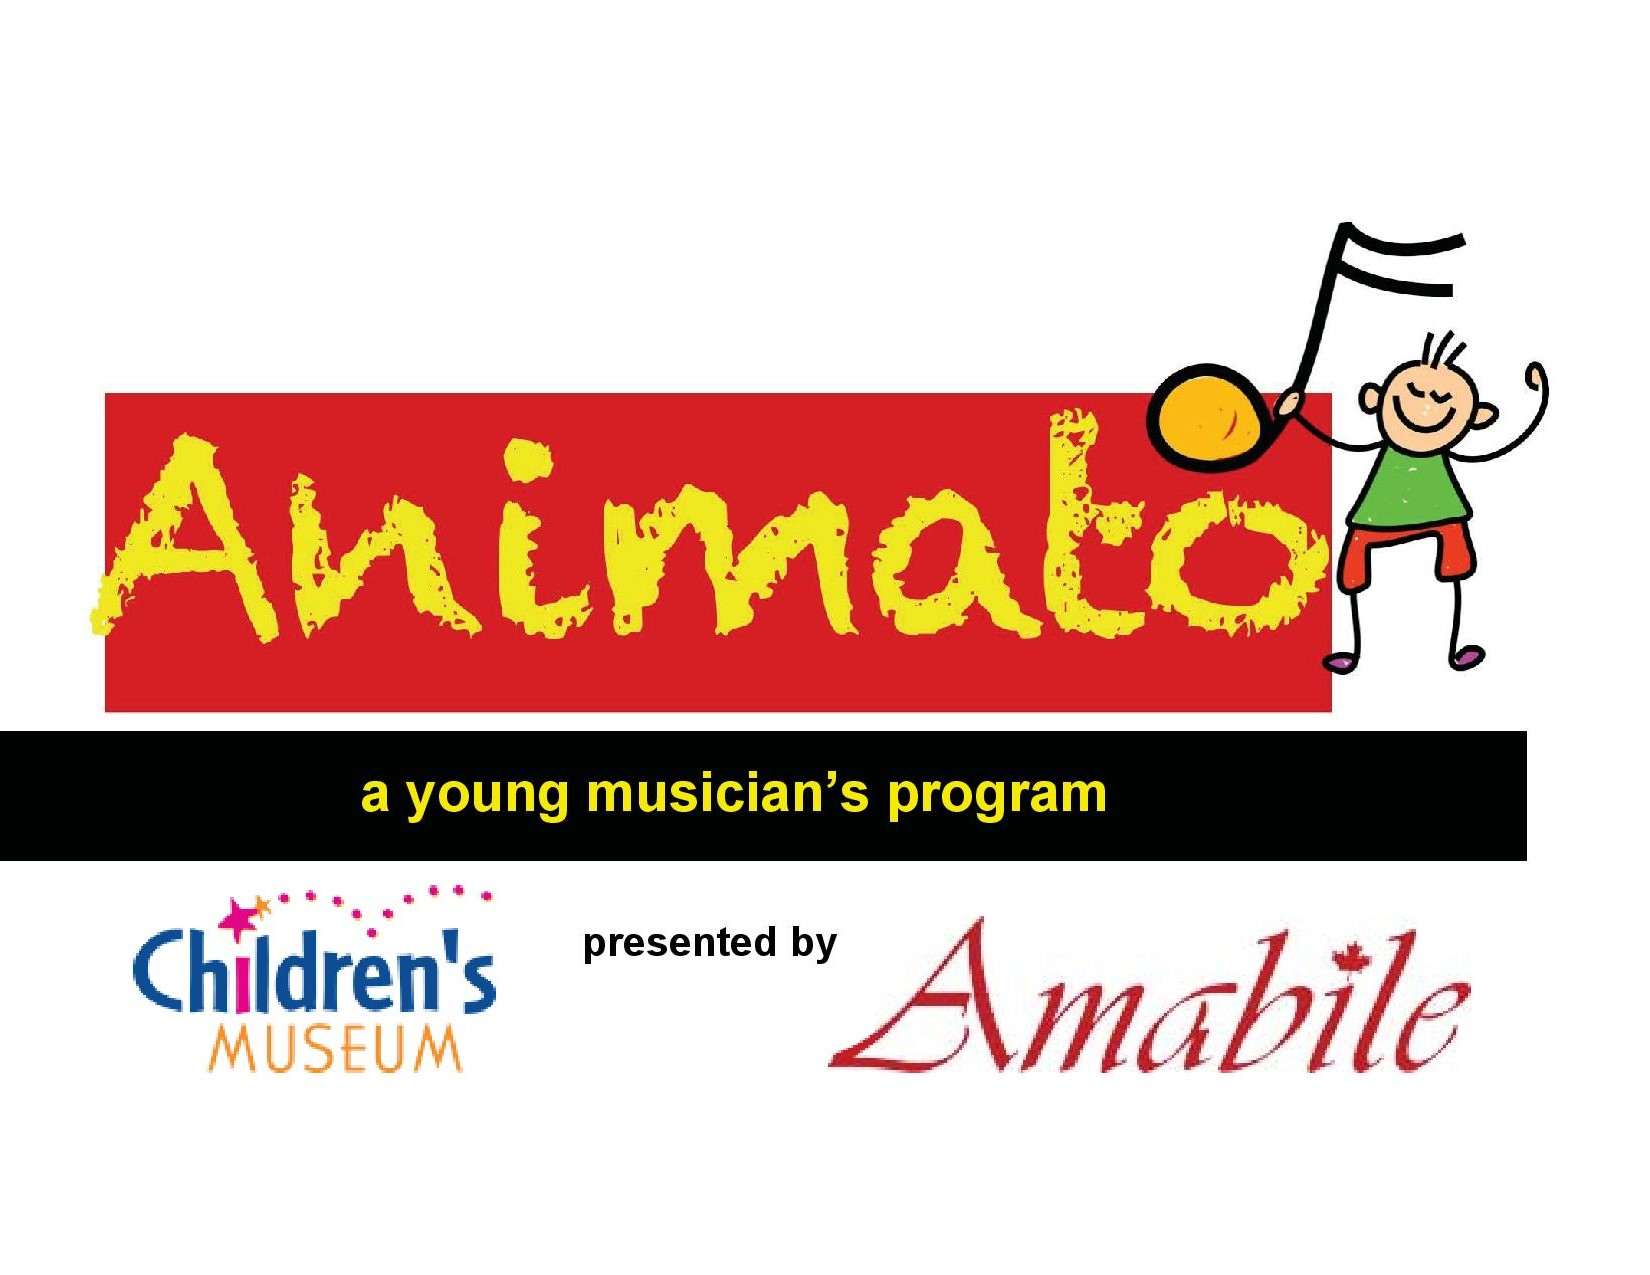 Animato - a young musician's program